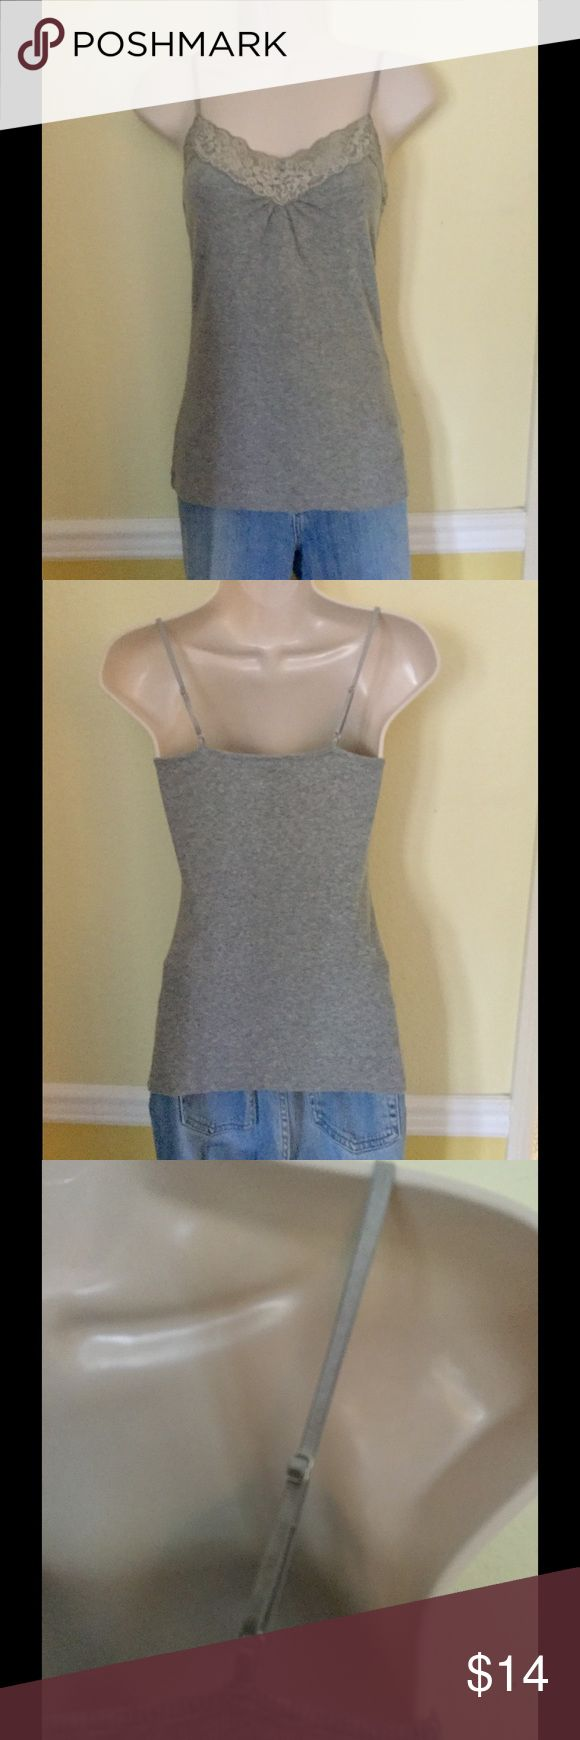 NWOT Gray spaghetti strap tank top, size small Worthington stretch gray spaghetti strap tank top with lace neckline, adjustable straps, size small. Never been worn. Worthington Tops Tank Tops